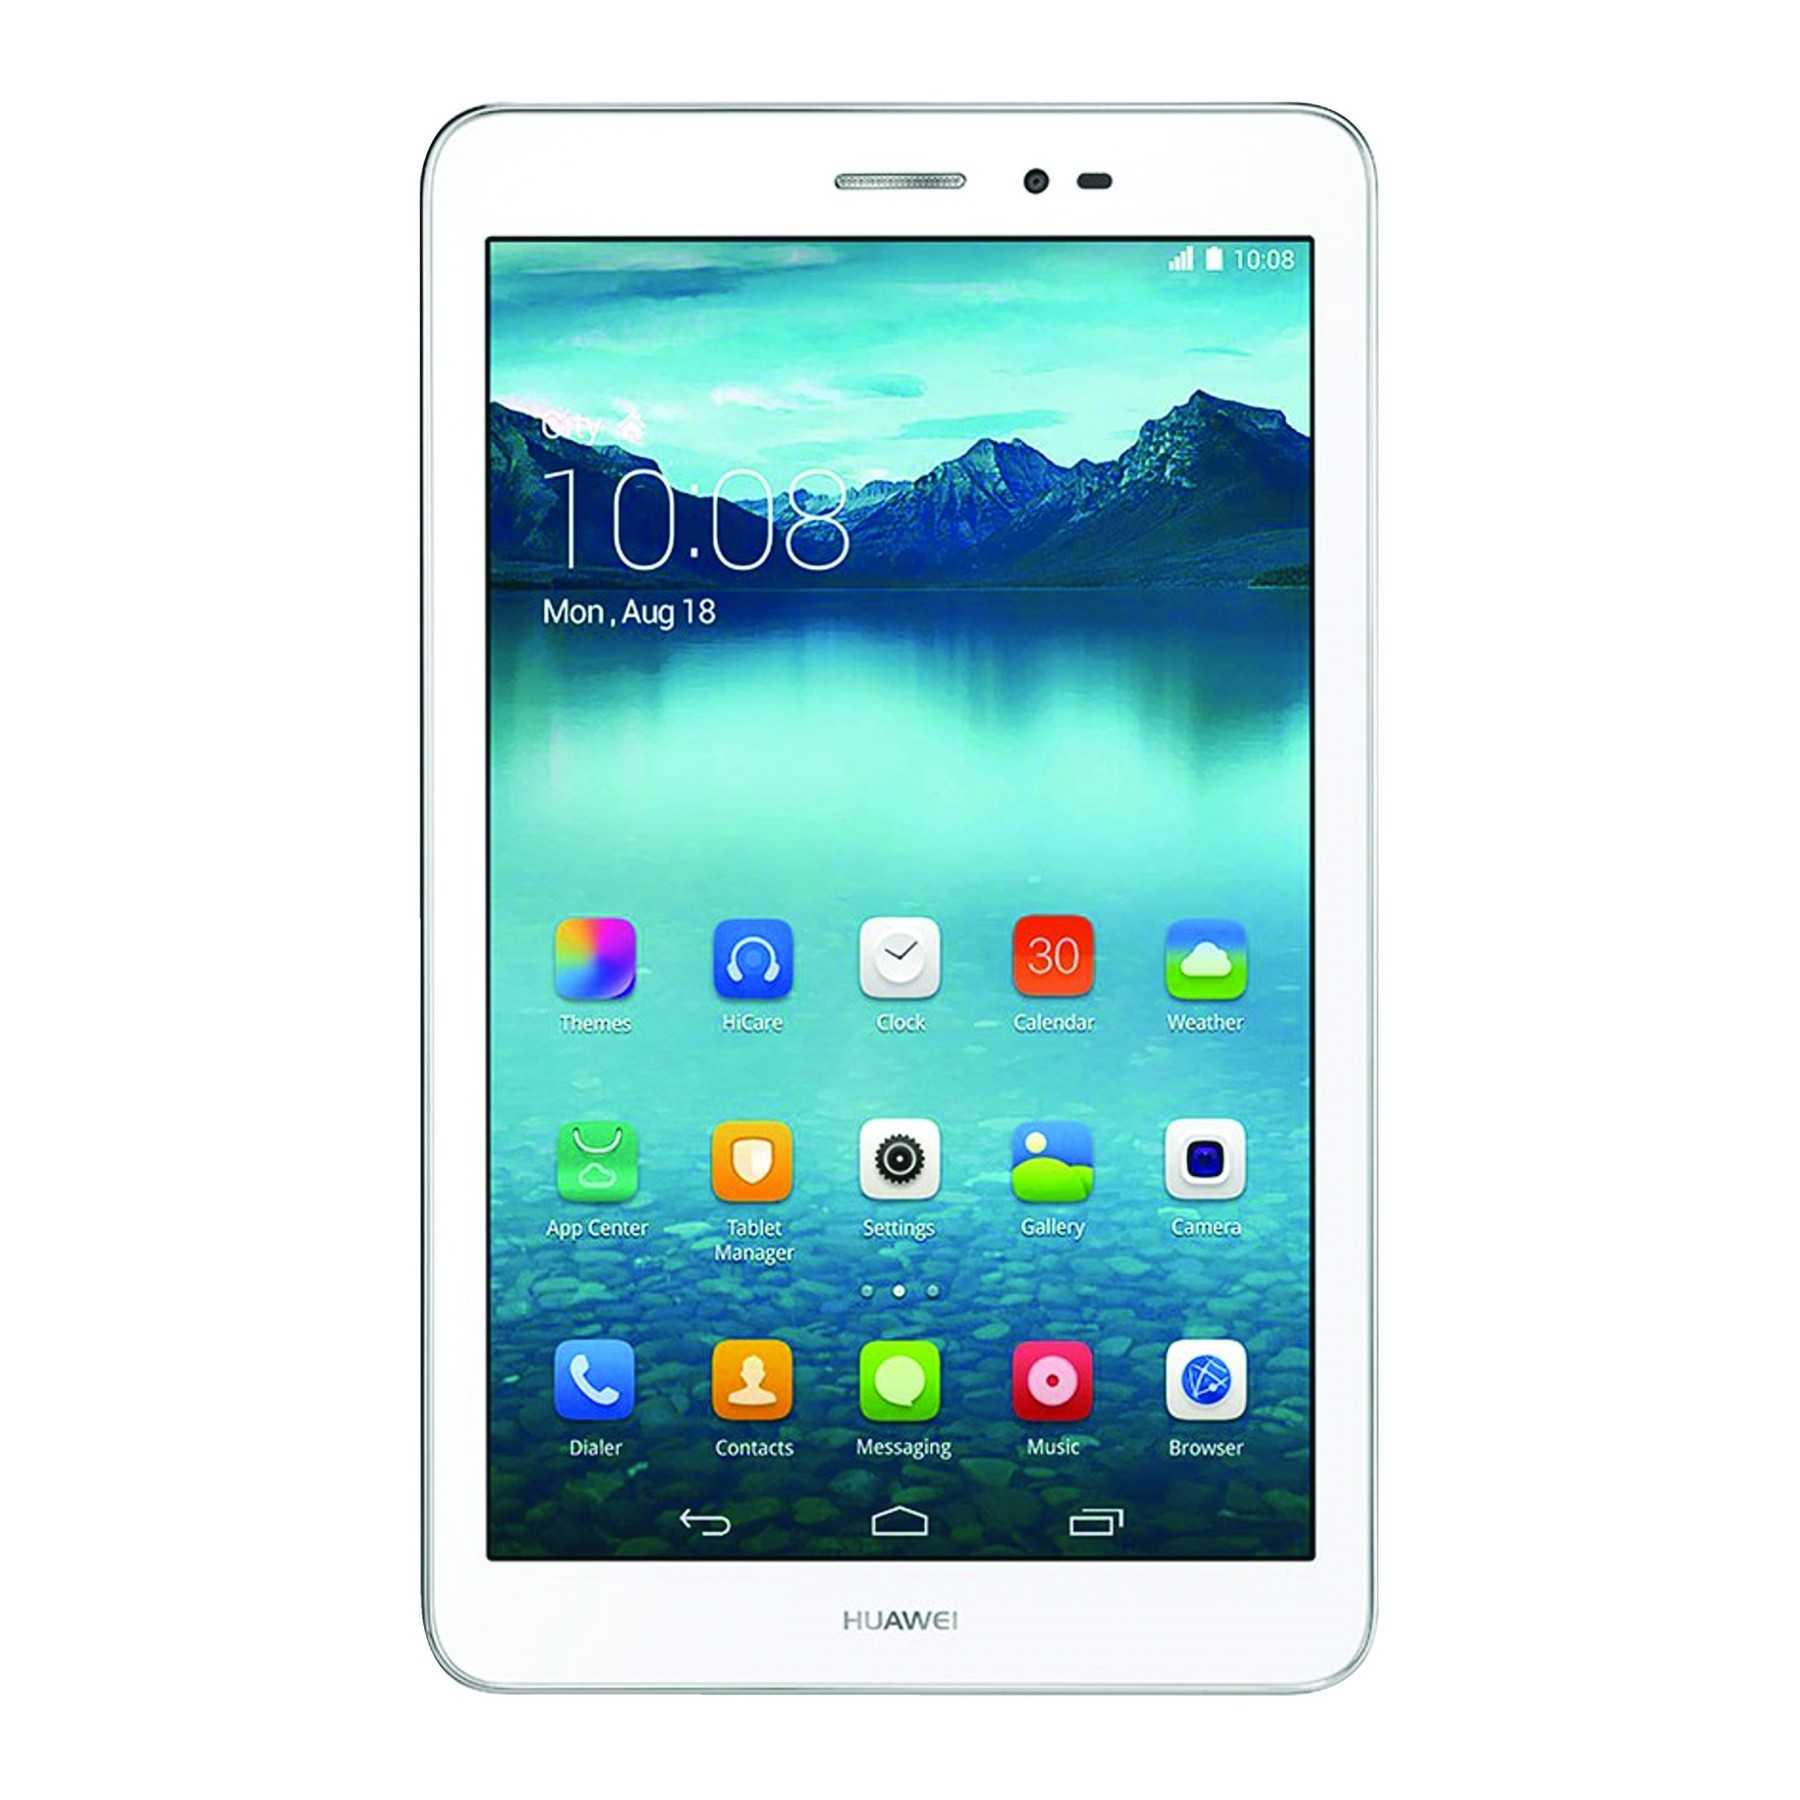 Huawei MediaPad T1 8.0 Pro 8 Inch 16GB 1.2GHz 5GB Android ...